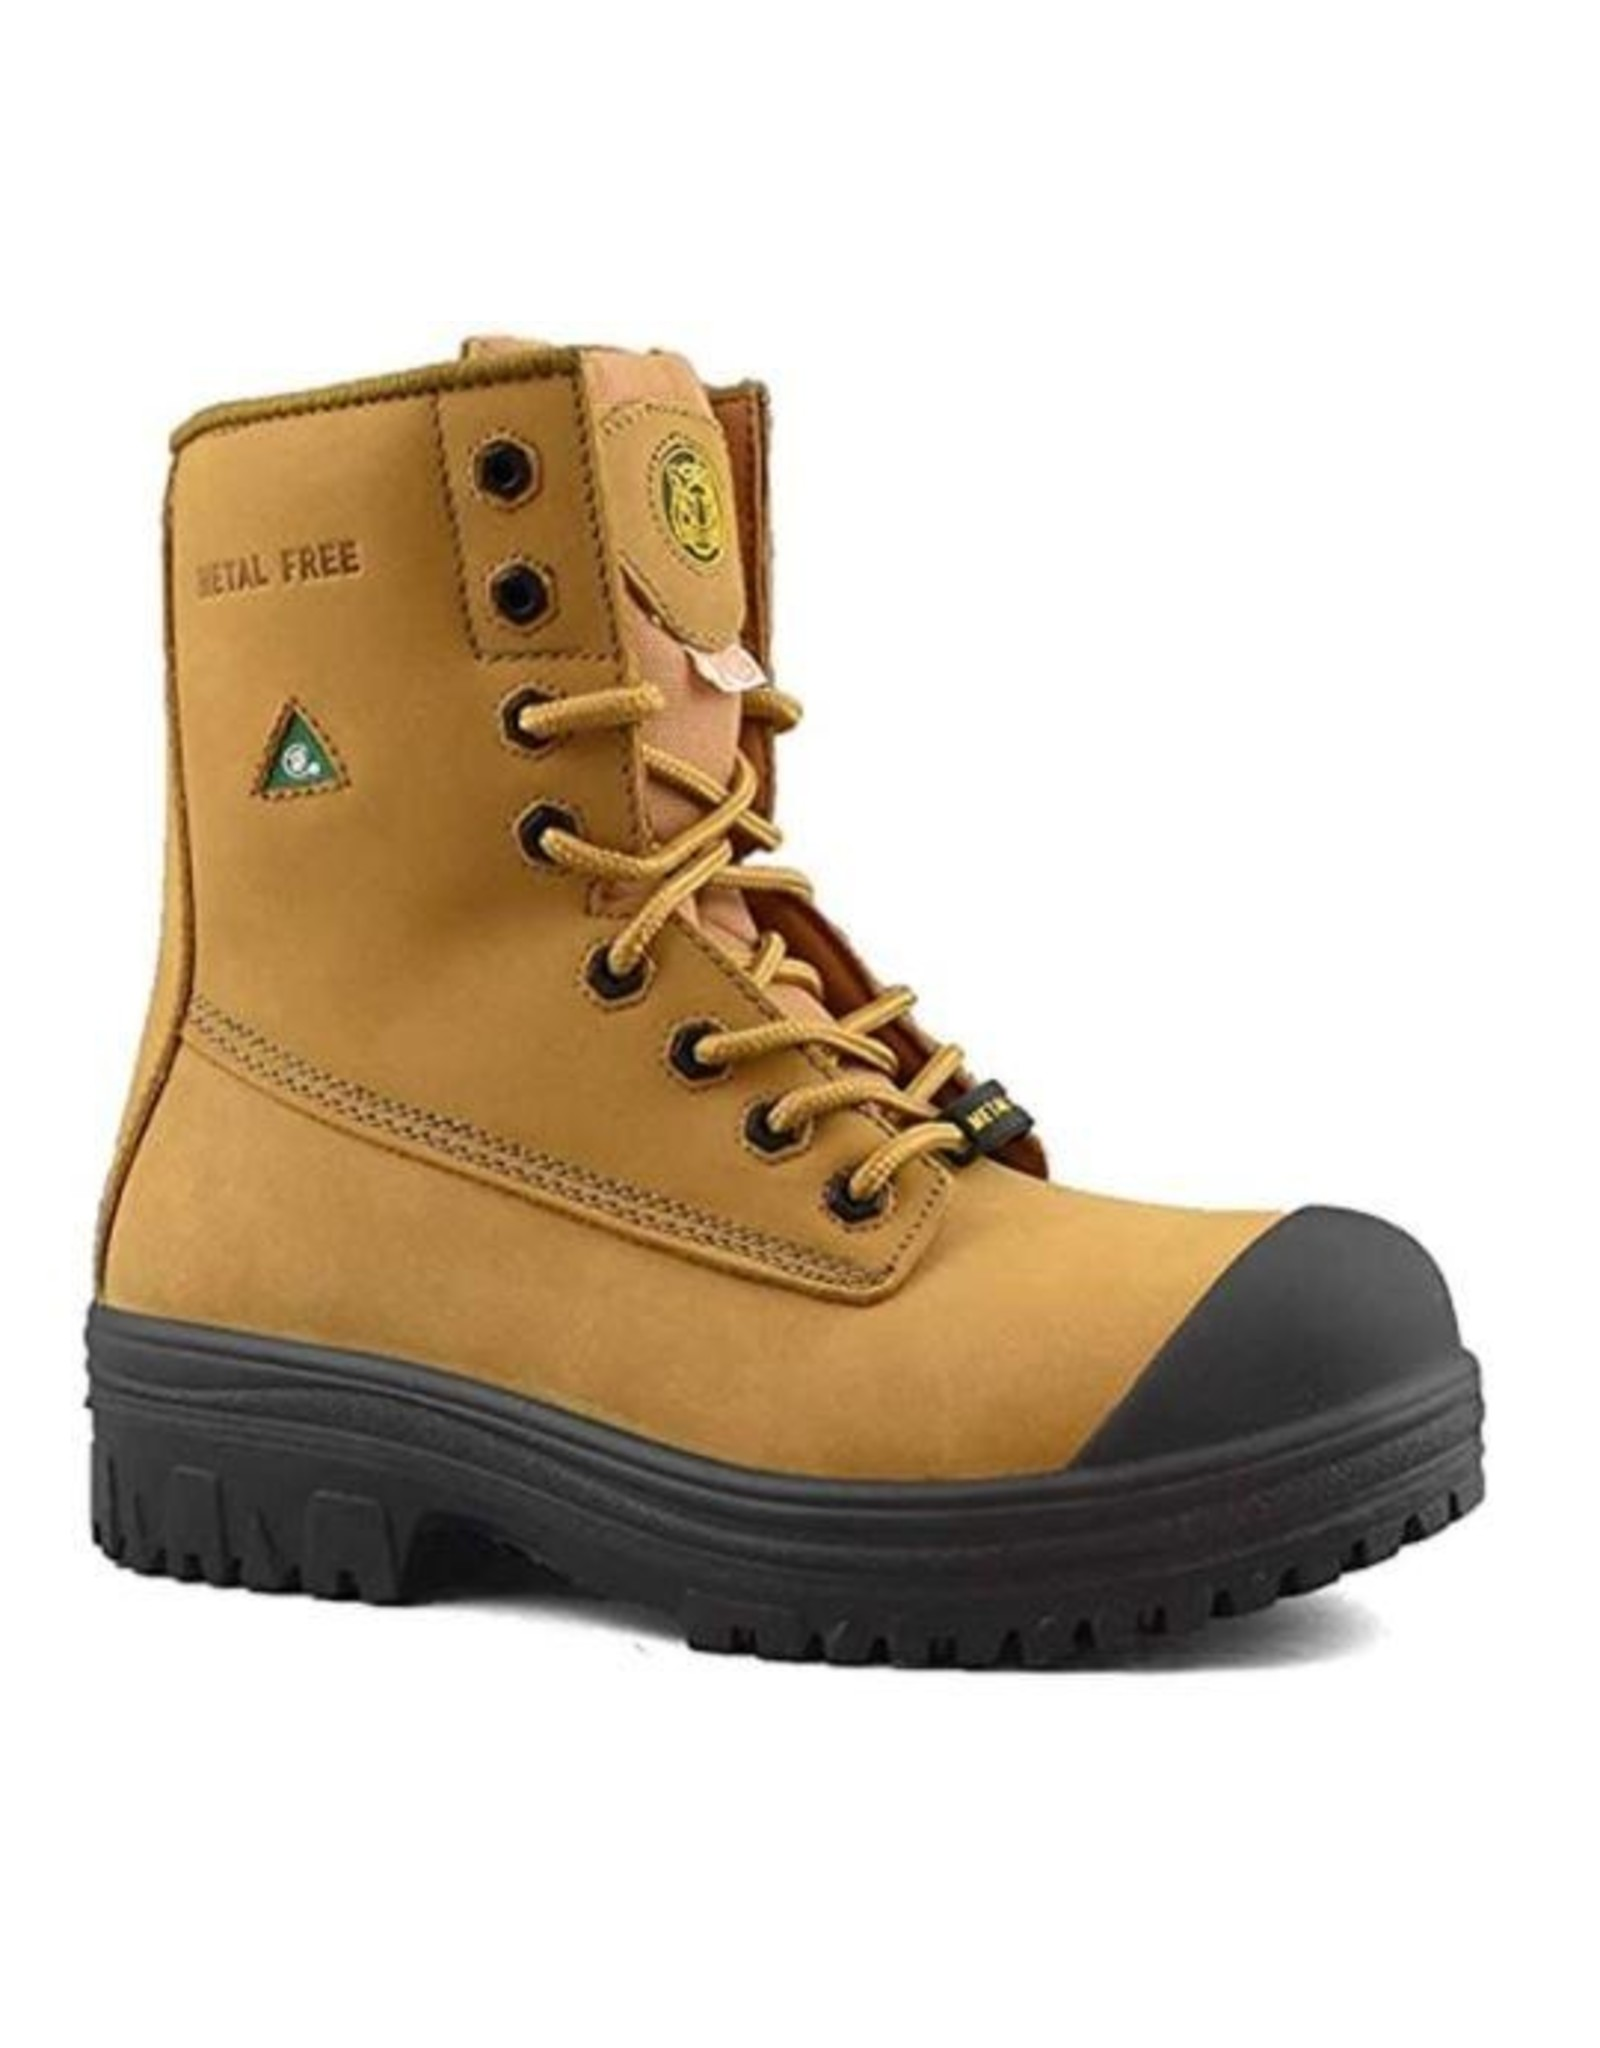 TIGER SAFETY 6228-W SAFETY BOOT